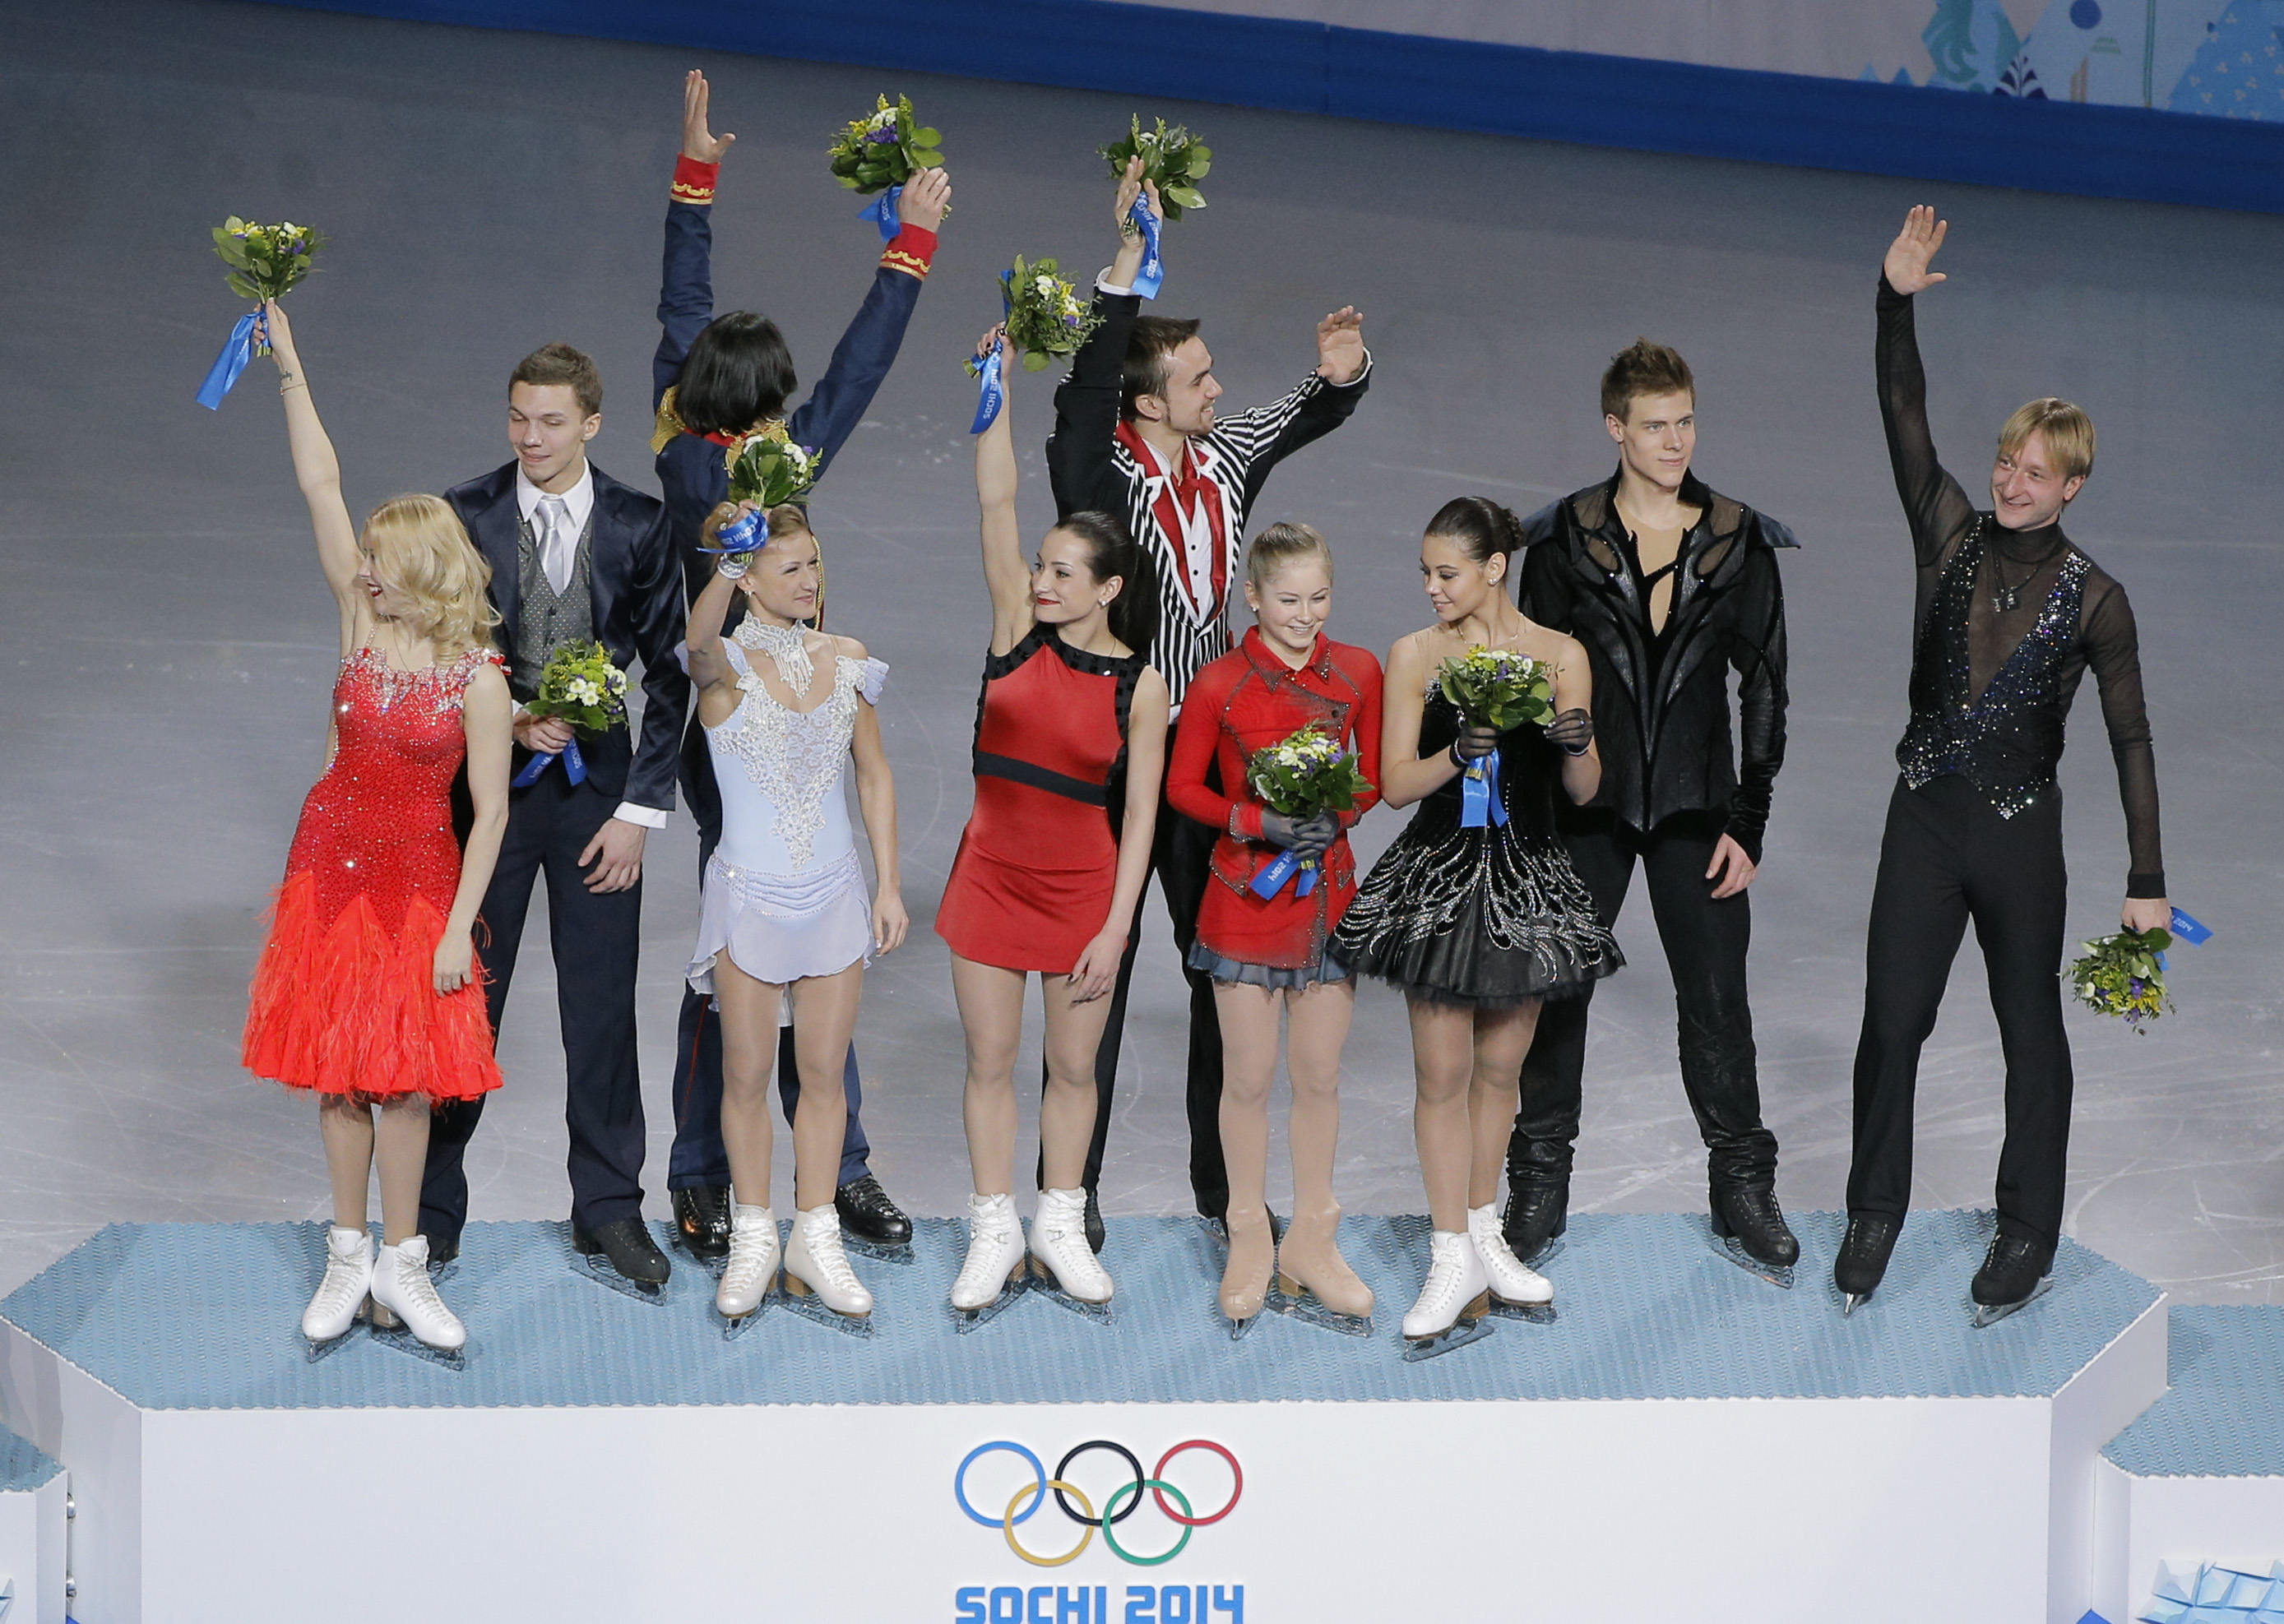 The Russian team wave to spectators from the podium during the flower ceremony after placing first in the team figure skating competition at the Iceberg Skating Palace during the 2014 Winter Olympics, Sunday, Feb. 9, 2014, in Sochi, Russia. (AP Photo/Vadim Ghirda)